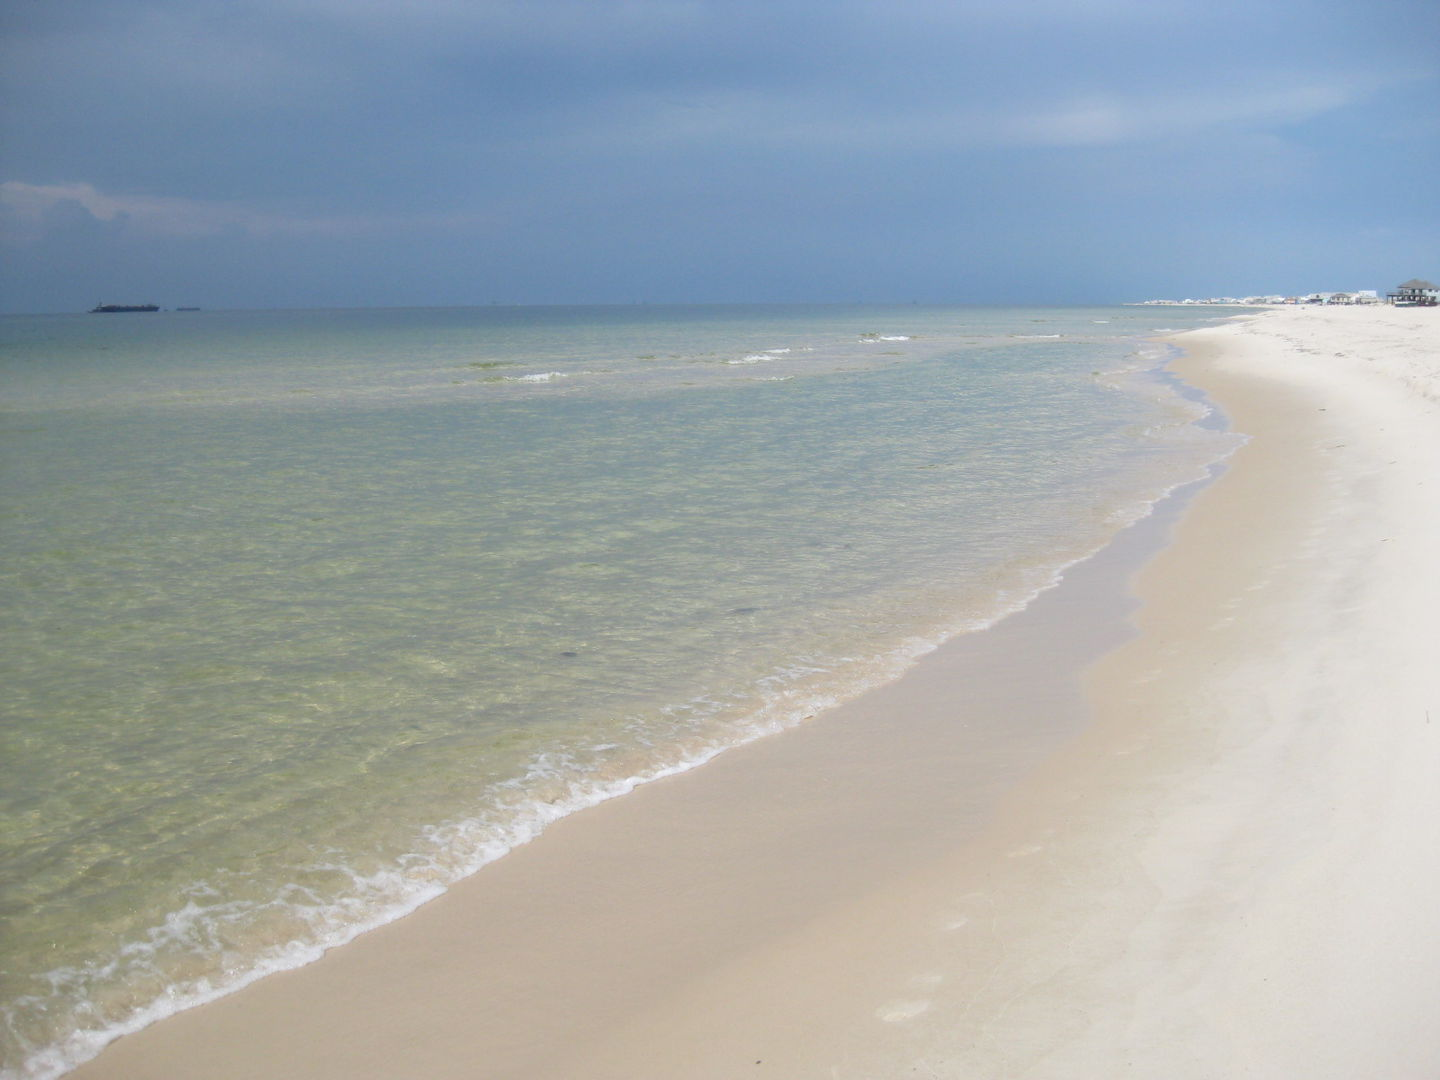 The beautiful white sandy beaches of the Gulf of Mexico just minutes away!!